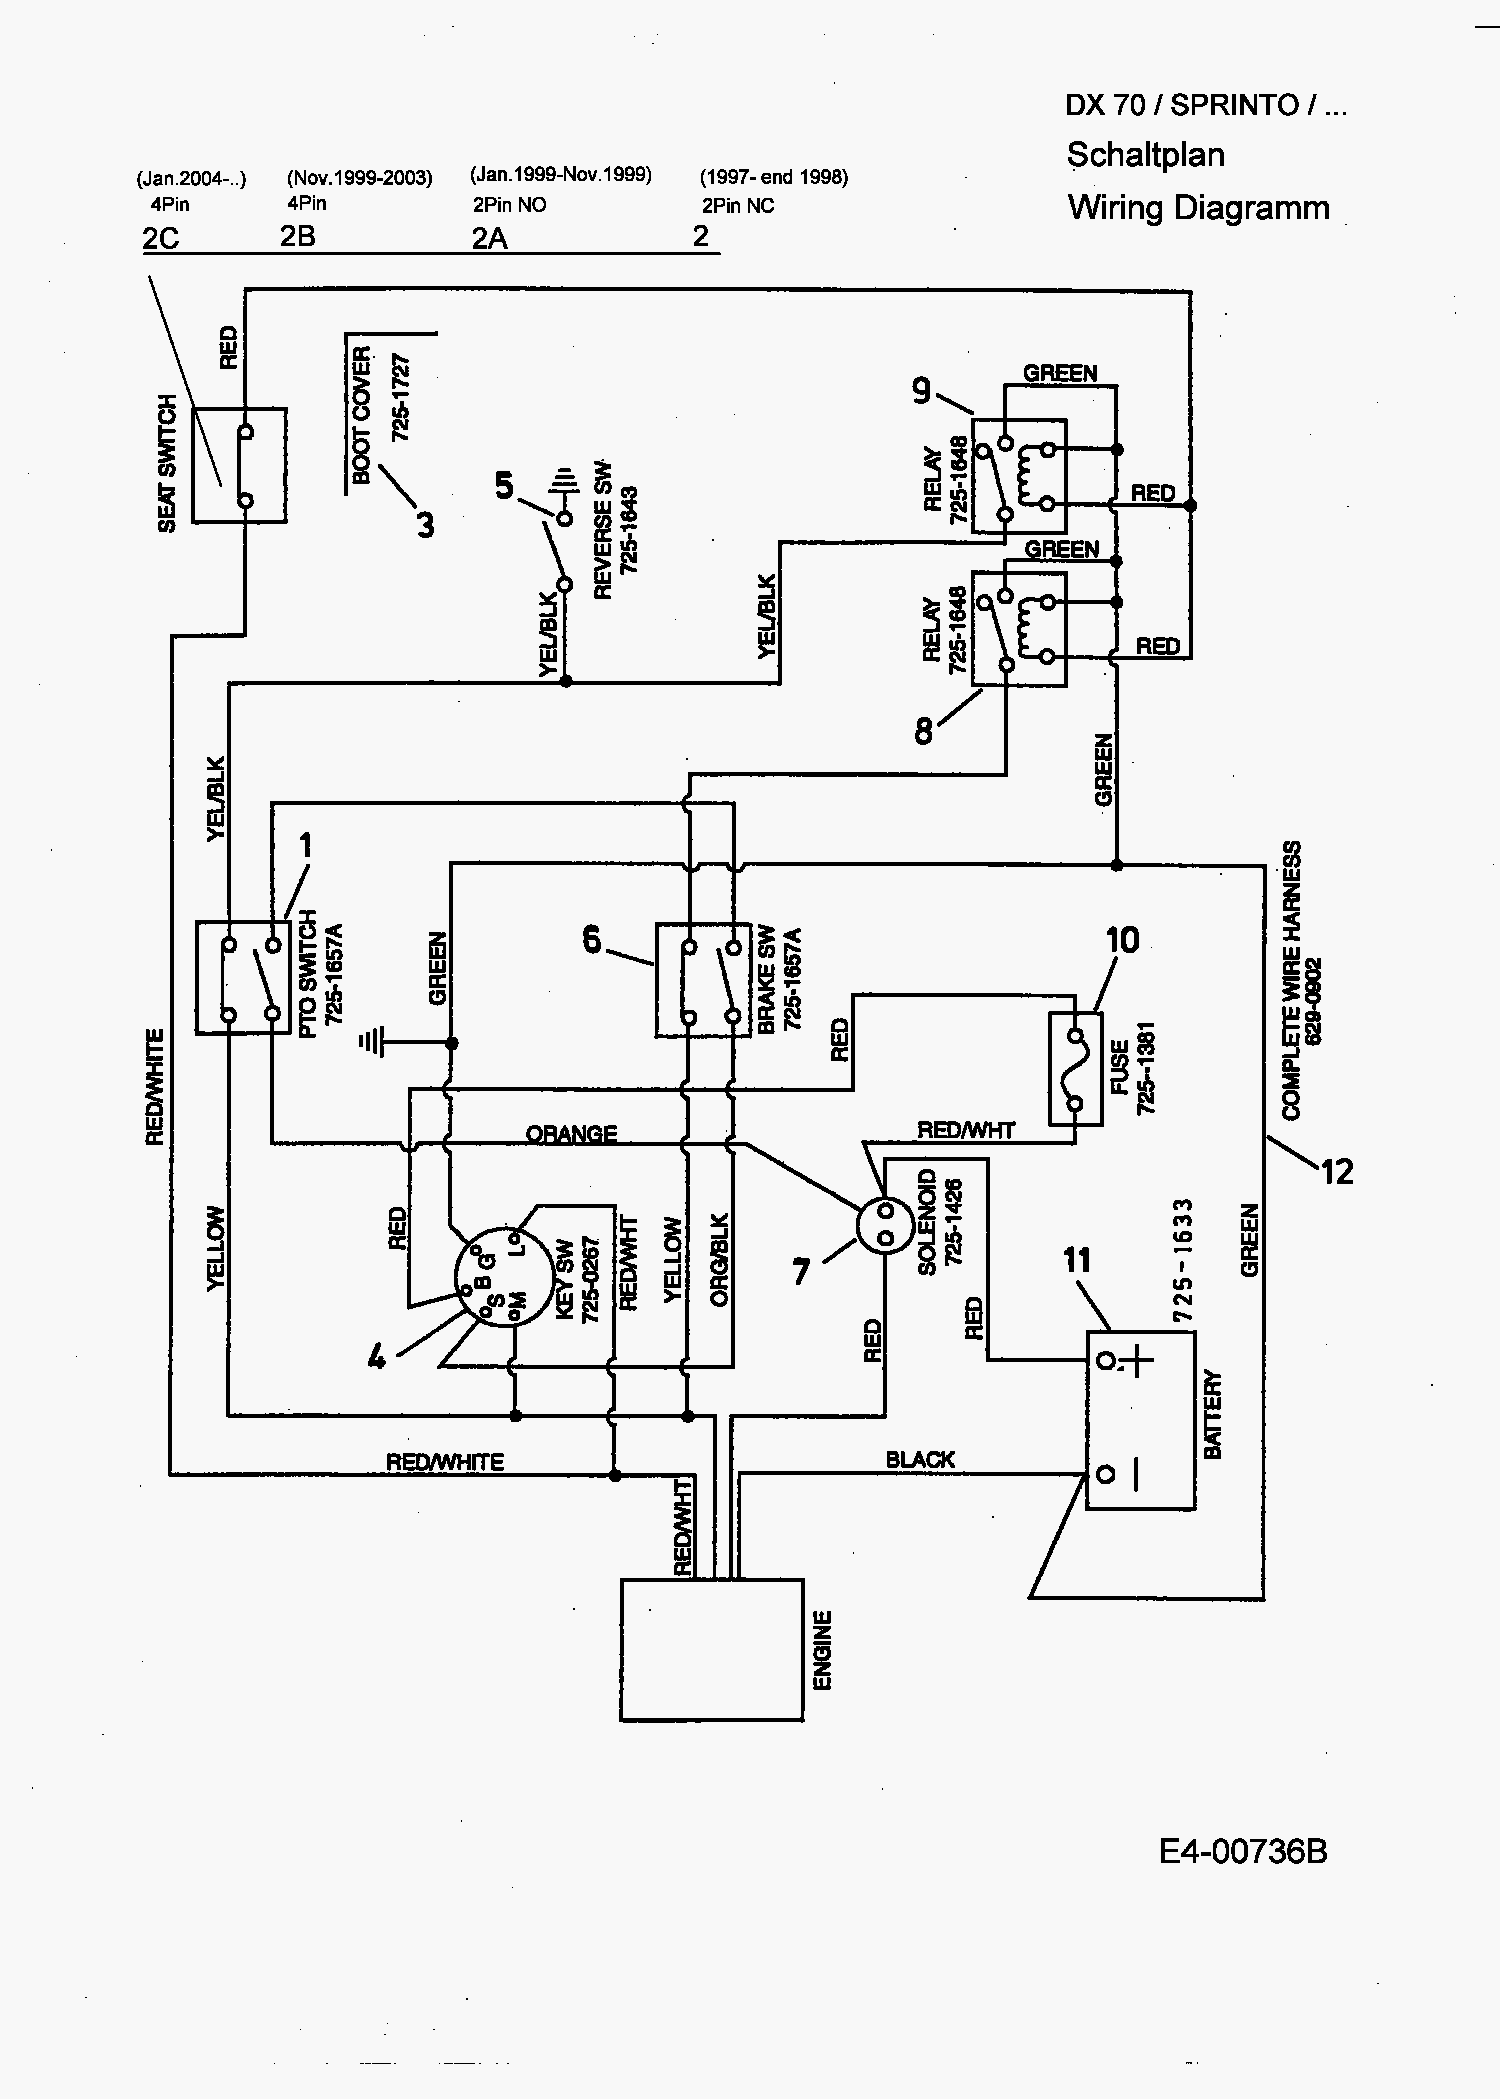 hight resolution of wiring diagram husqvarna rz 5426 wiring diagrams konsult wiring diagram husqvarna rz 5426 wiring diagrams trigg